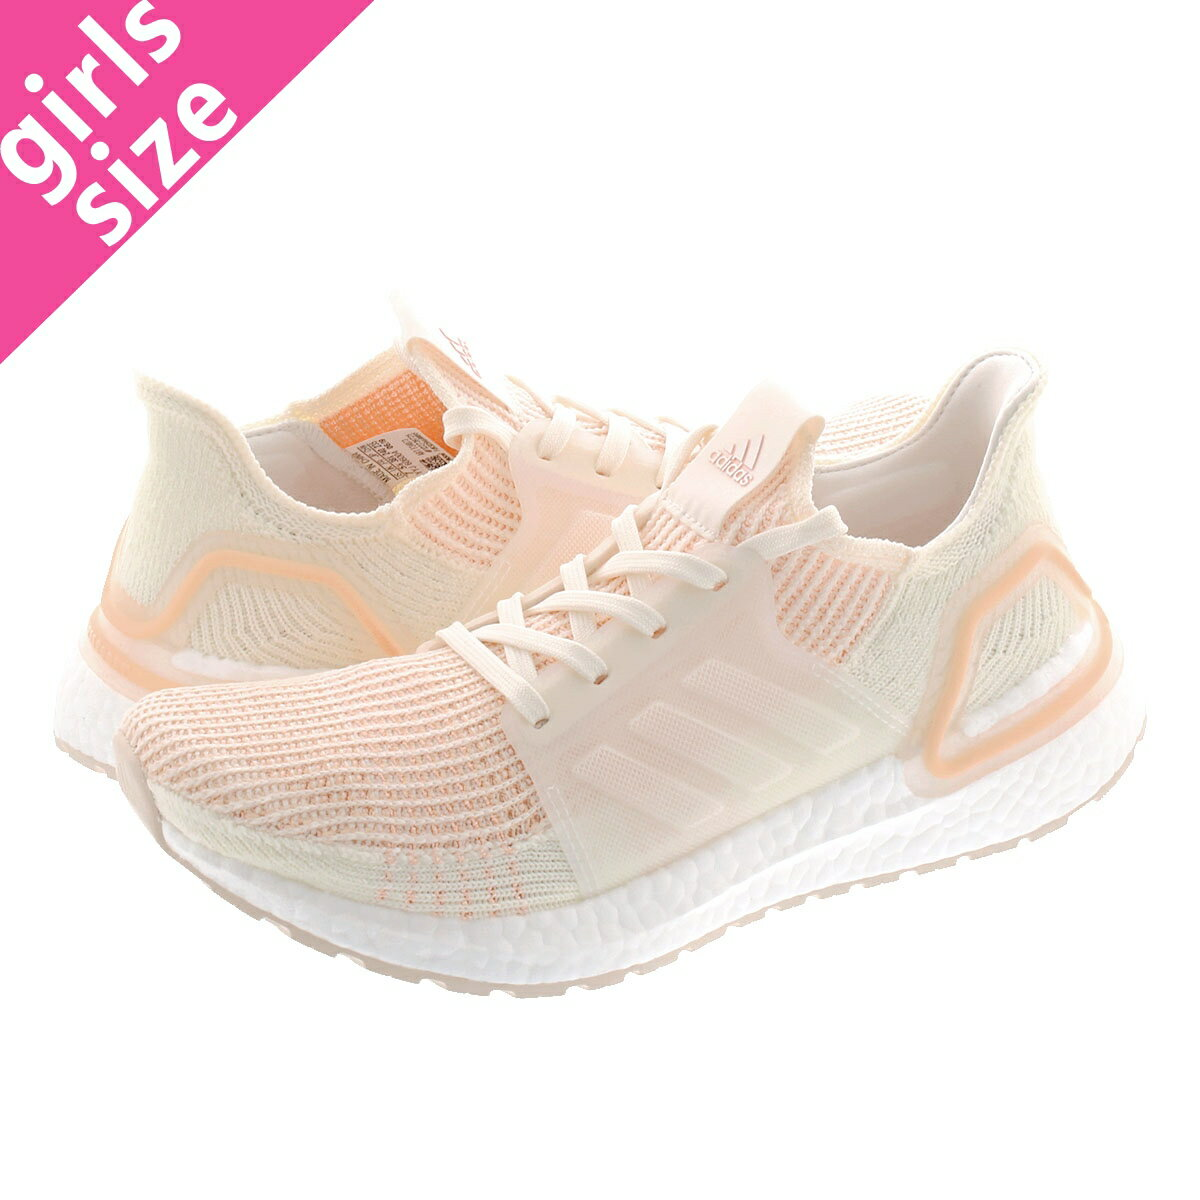 レディース靴, スニーカー adidas ULTRA BOOST 19 W 19 OFF WHITEOFF WHITEGLOW ORANGE f34073